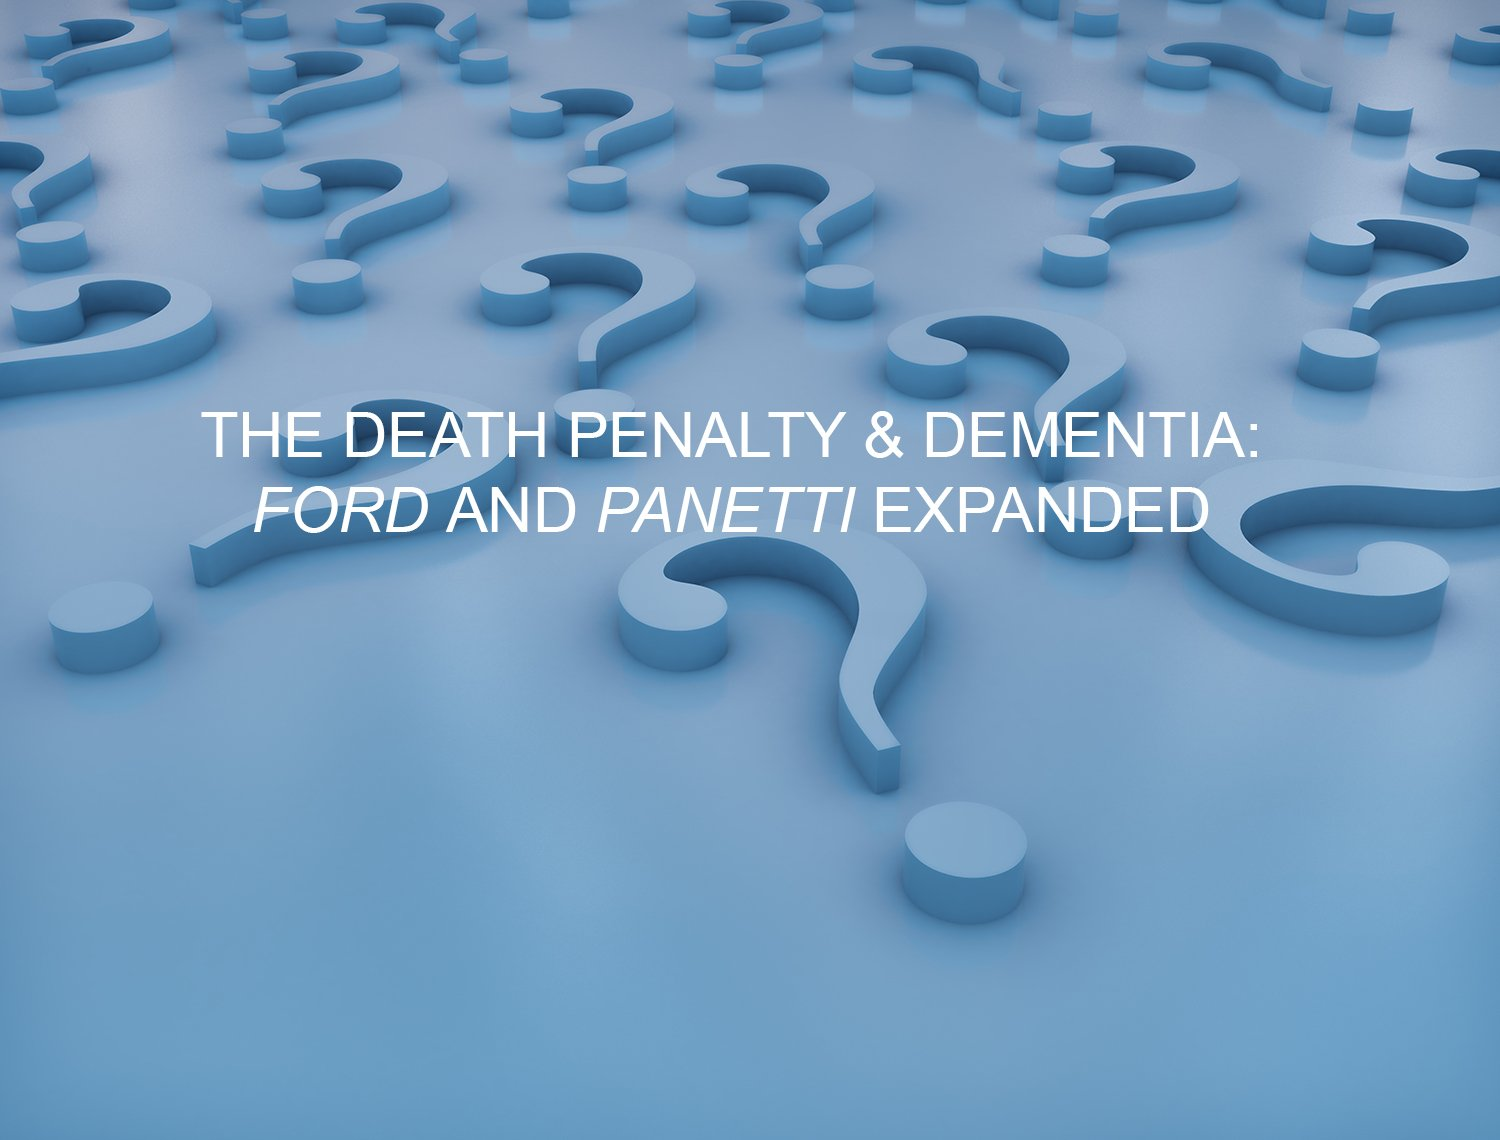 The Death Penalty and Dementia